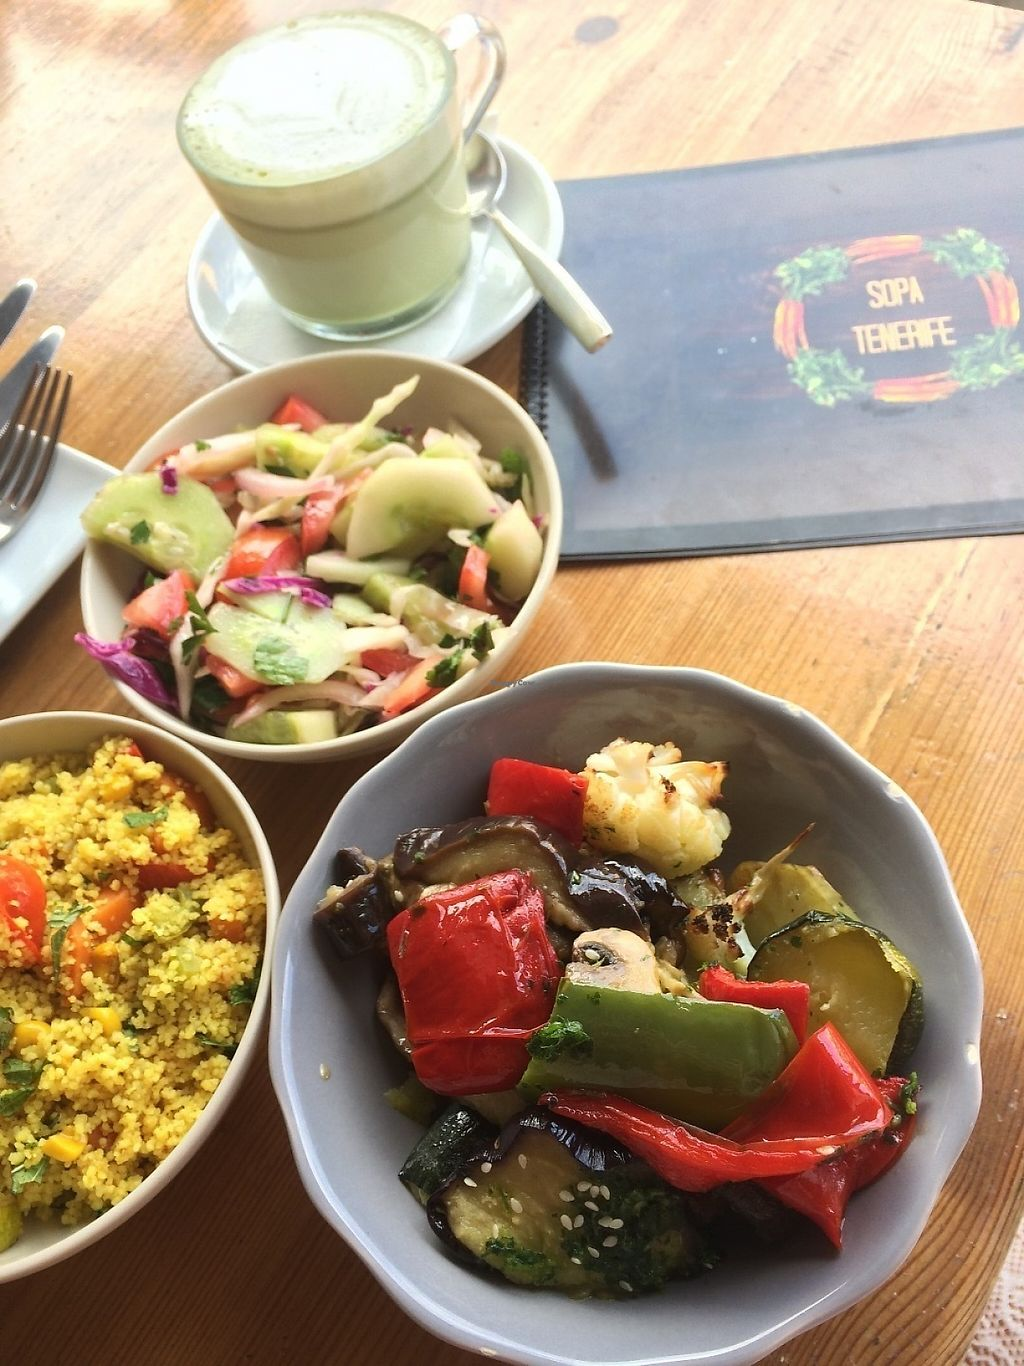 "Photo of SOPA  by <a href=""/members/profile/EmmaSchofield"">EmmaSchofield</a> <br/>Cous cous, veggies, salad and matcha cappuccino made with almond milk <br/> June 2, 2017  - <a href='/contact/abuse/image/66038/265091'>Report</a>"